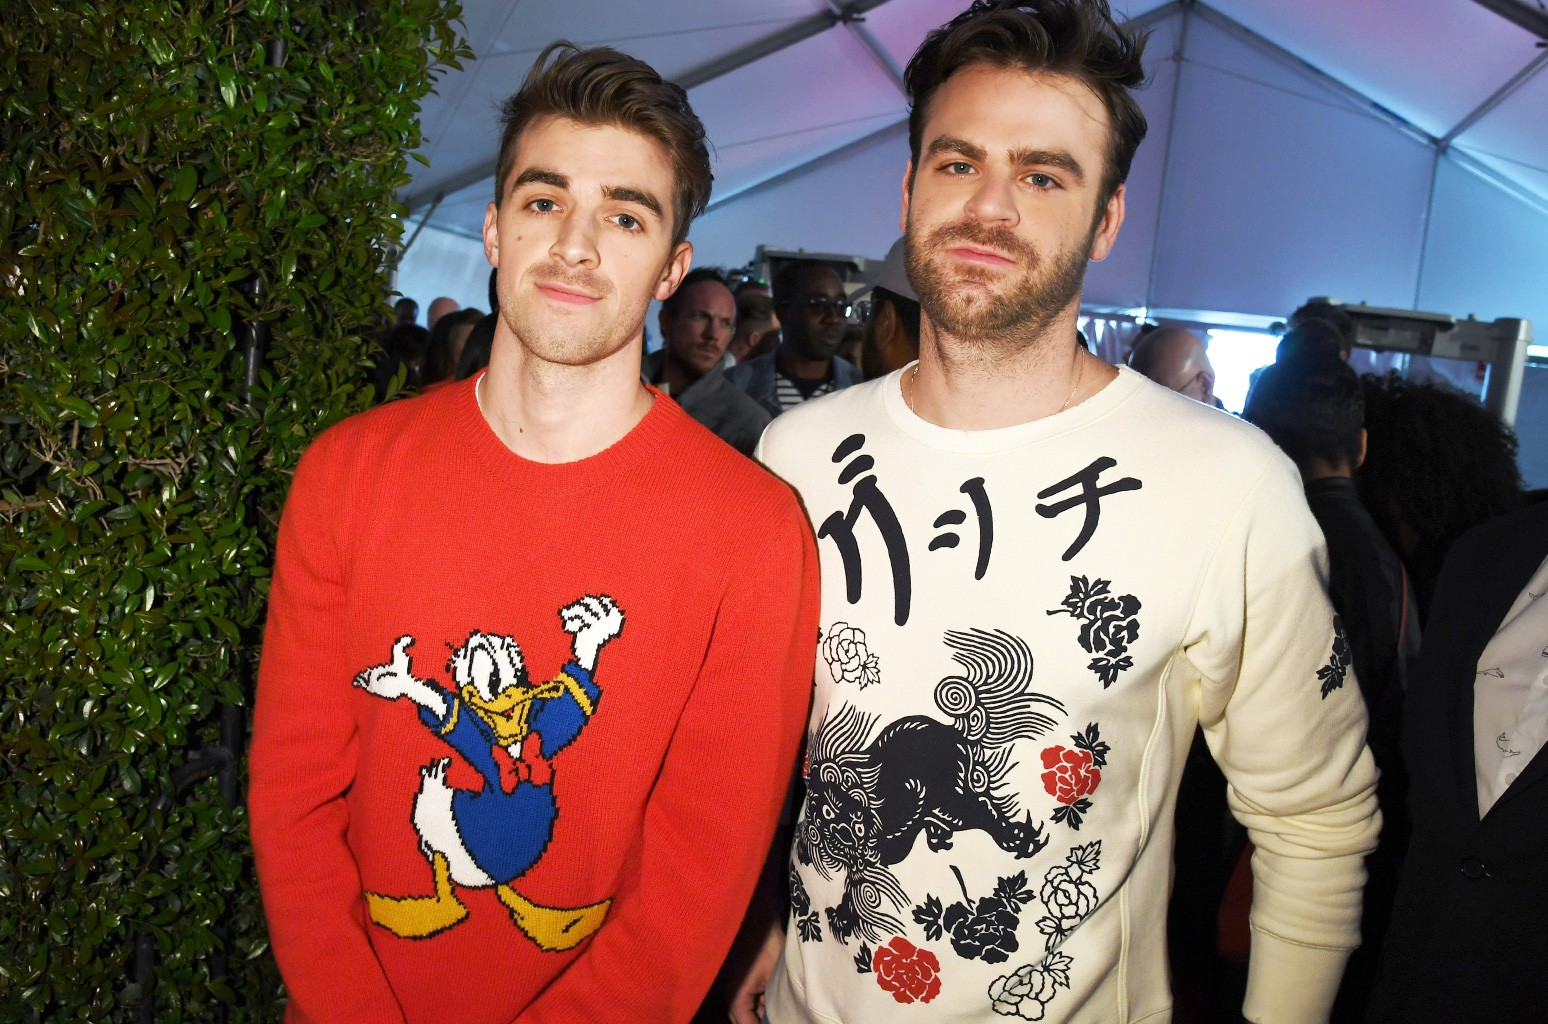 Drew Taggart and Alex Pall of The Chainsmokers attend the 2017 iHeartRadio Music Awards which broadcast live on Turner's TBS, TNT, and truTV at The Forum on March 5, 2017 in Inglewood, Calif.